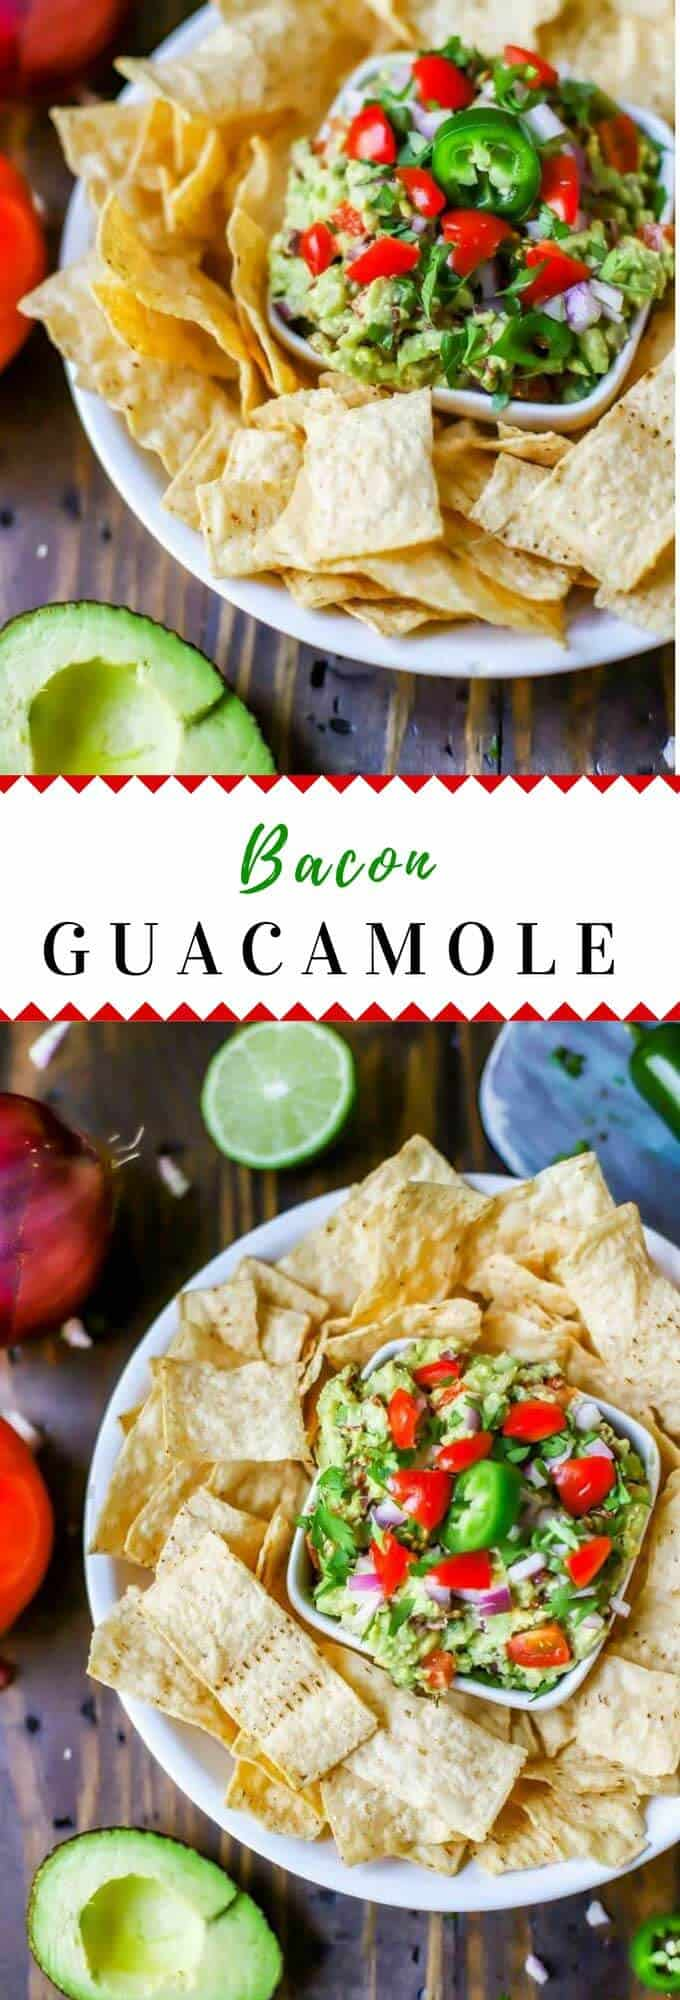 Looking for appetizers that are easy to make? This Bacon Guacamole Dip is the perfect gluten free recipe for parties and game day! #gamedayrecipes #glutenfree #avocado #gameday #avocadorecipes #guacamole